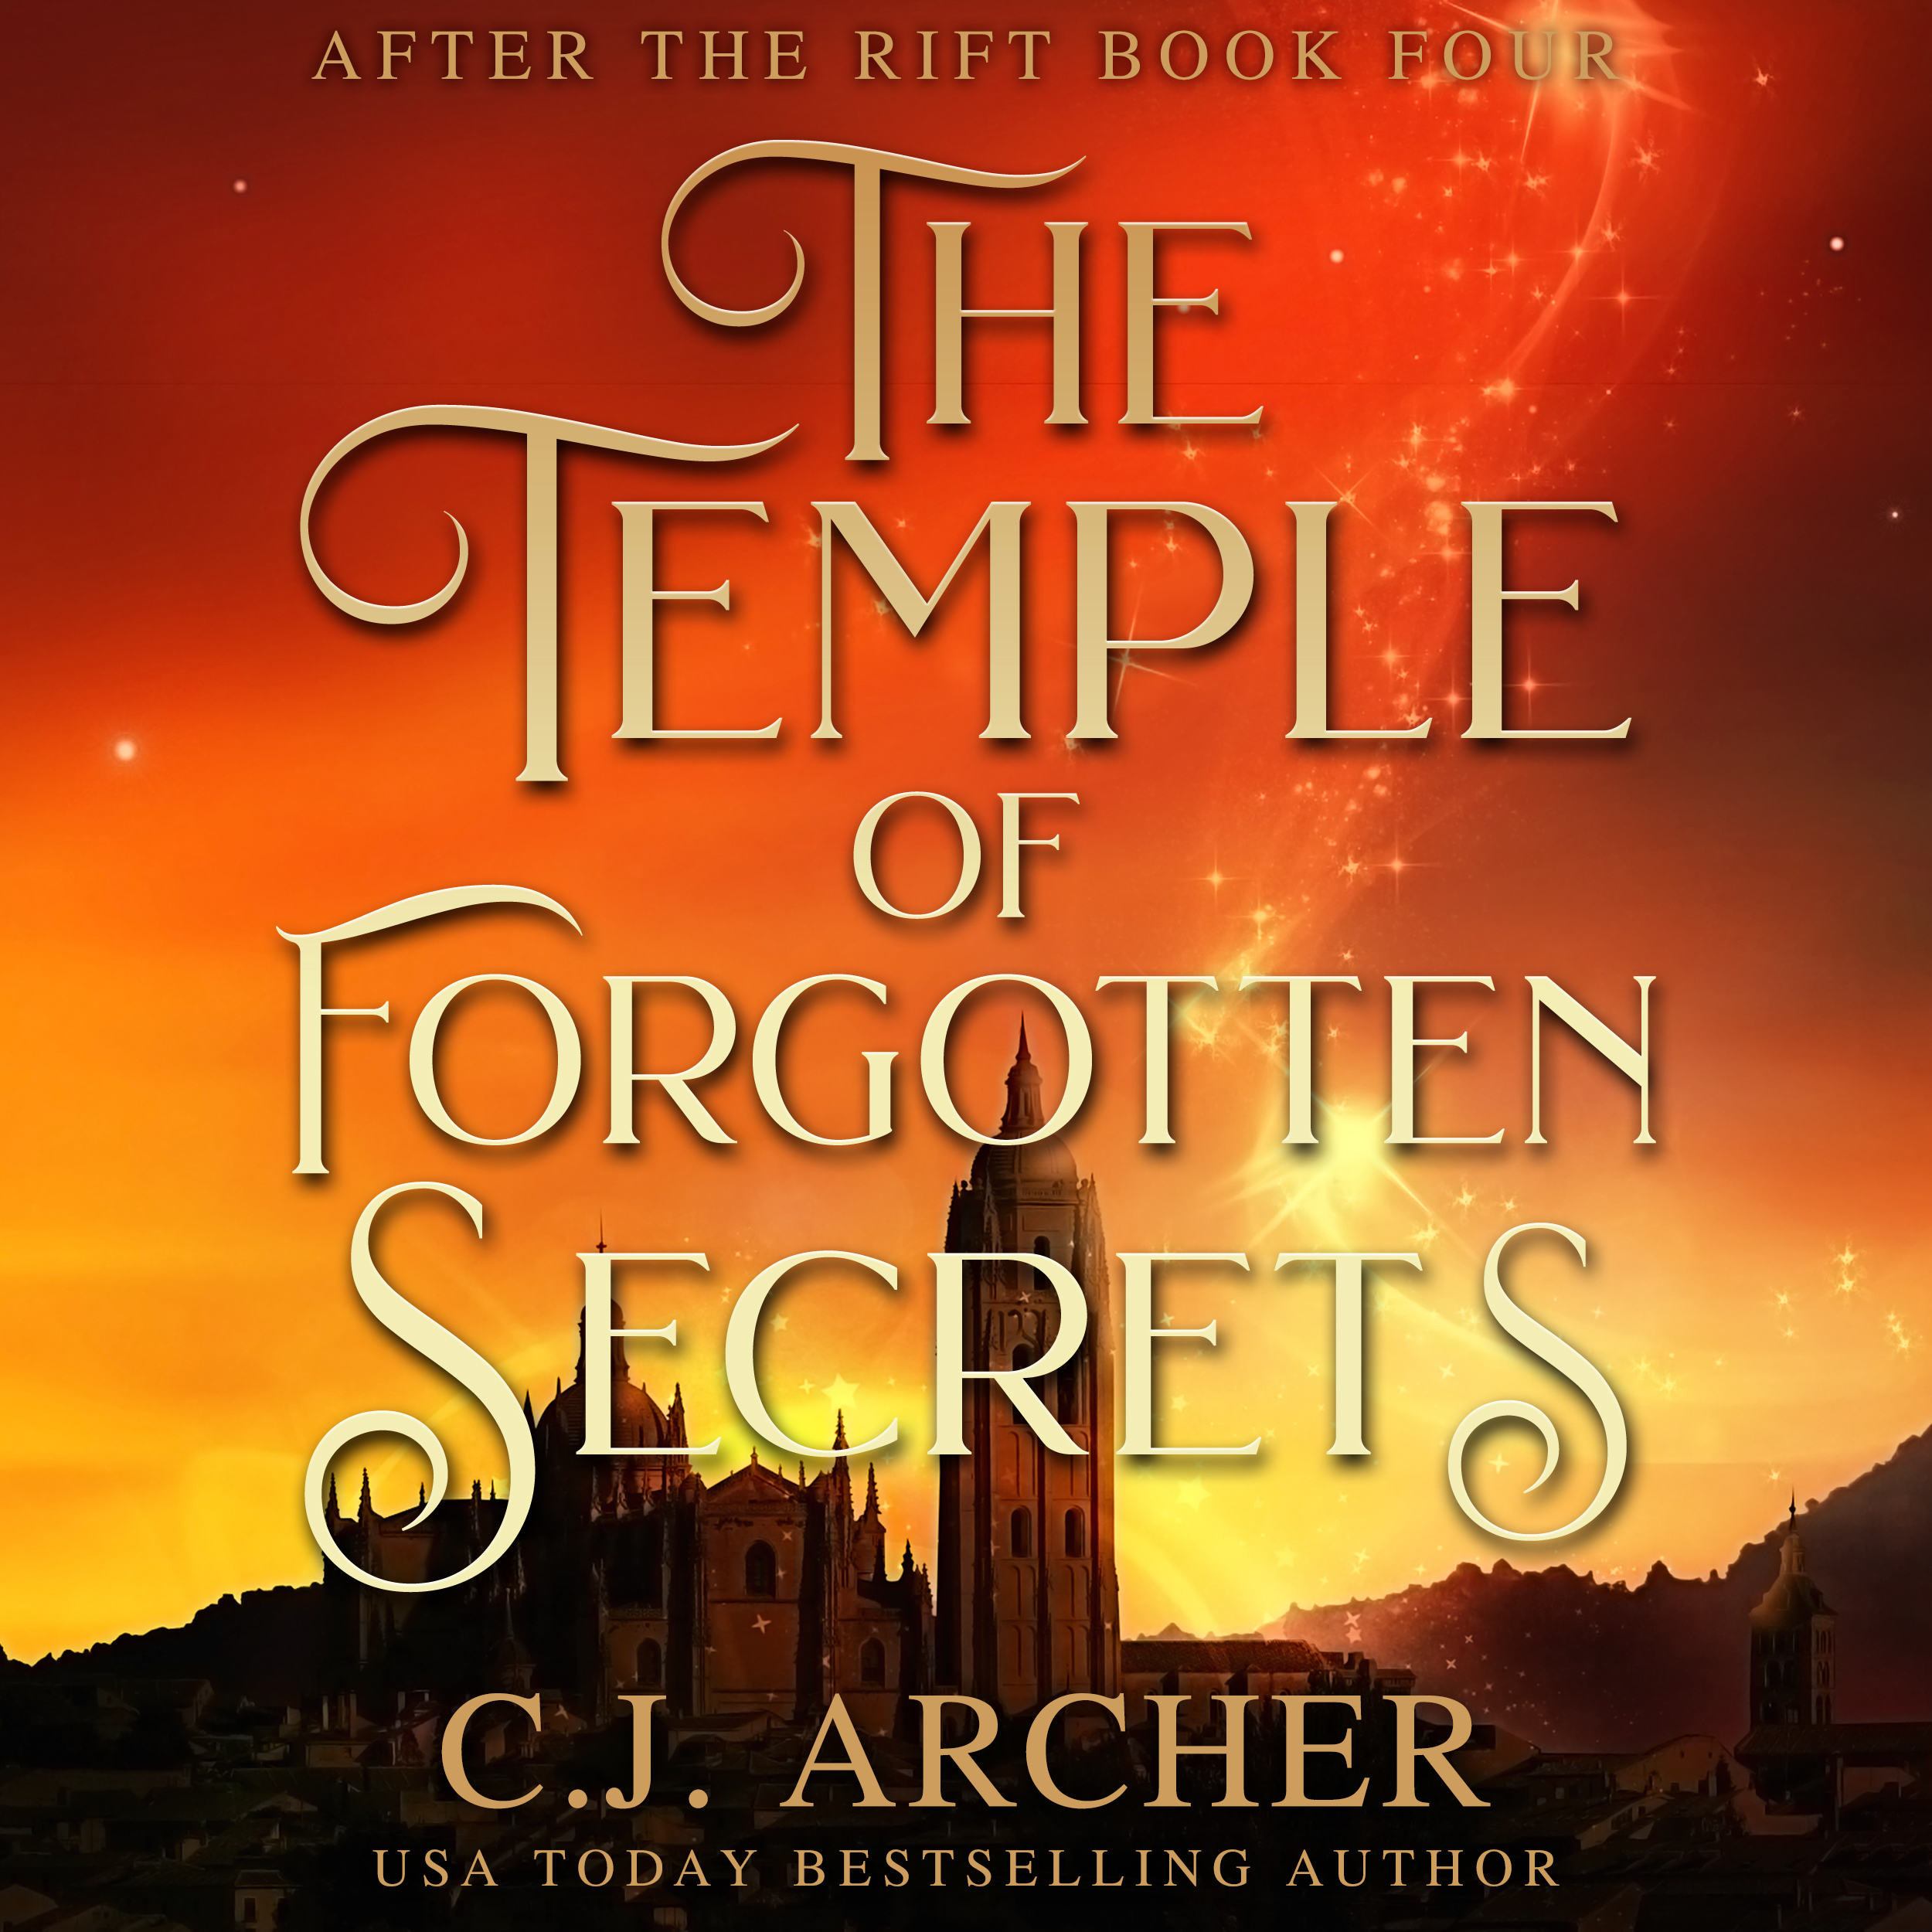 The Temple of Forgotten Secrets audiobook by CJ Archer